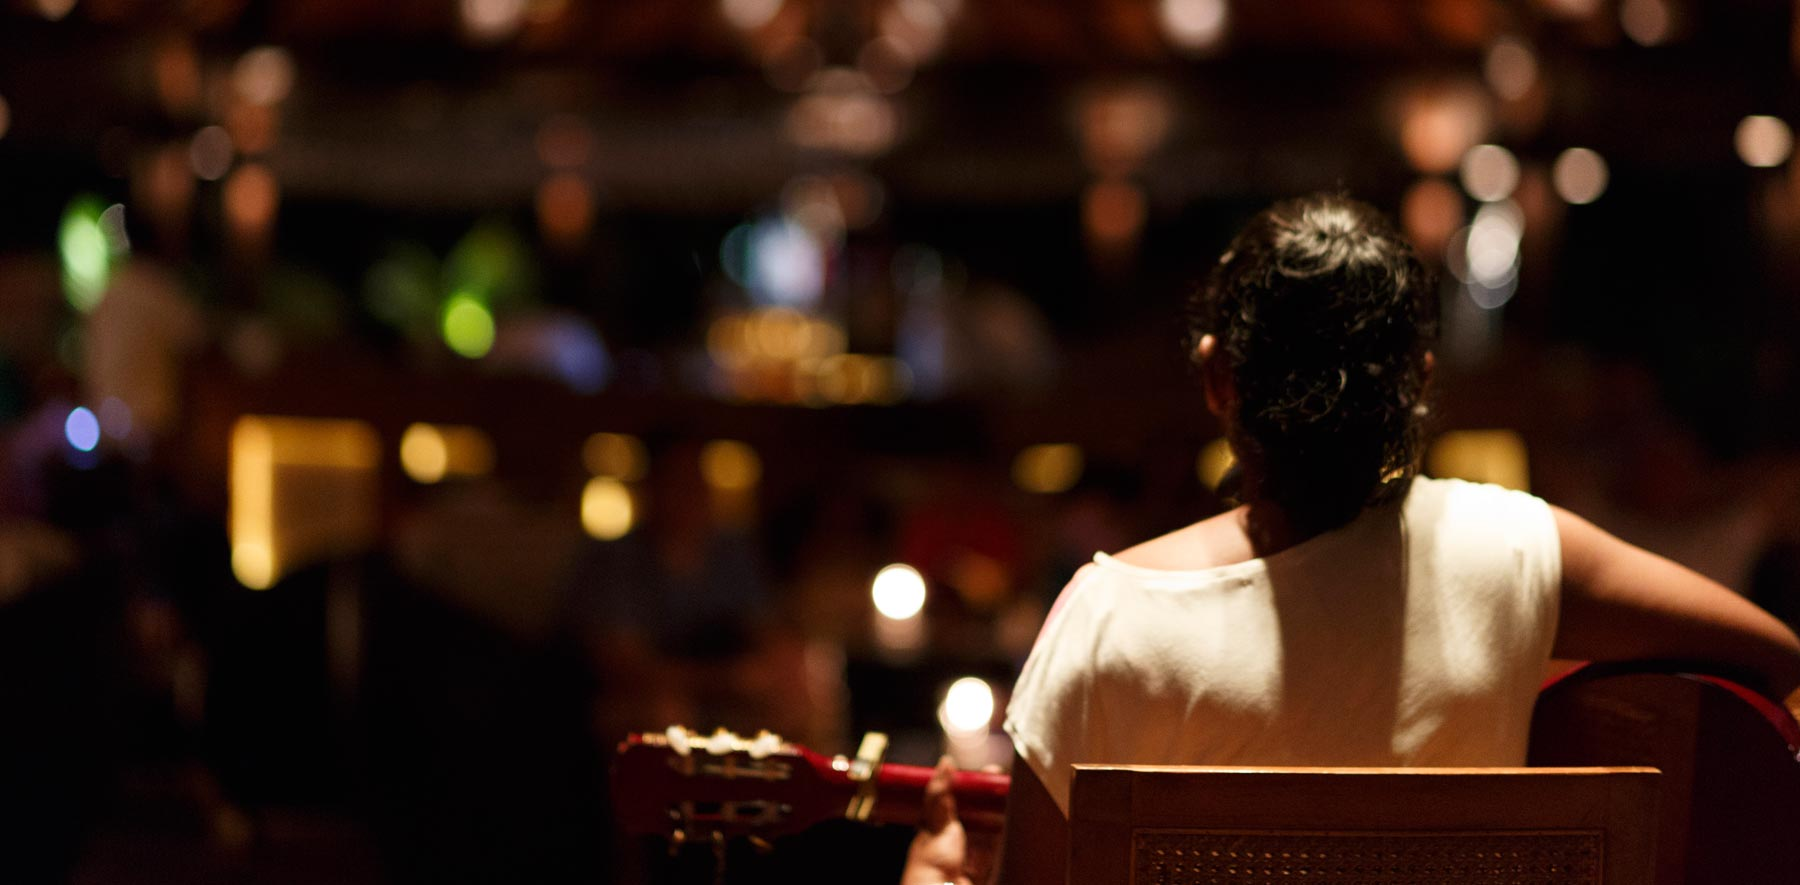 Maldives Live Entertainment Image | Kurumba Maldives Resort